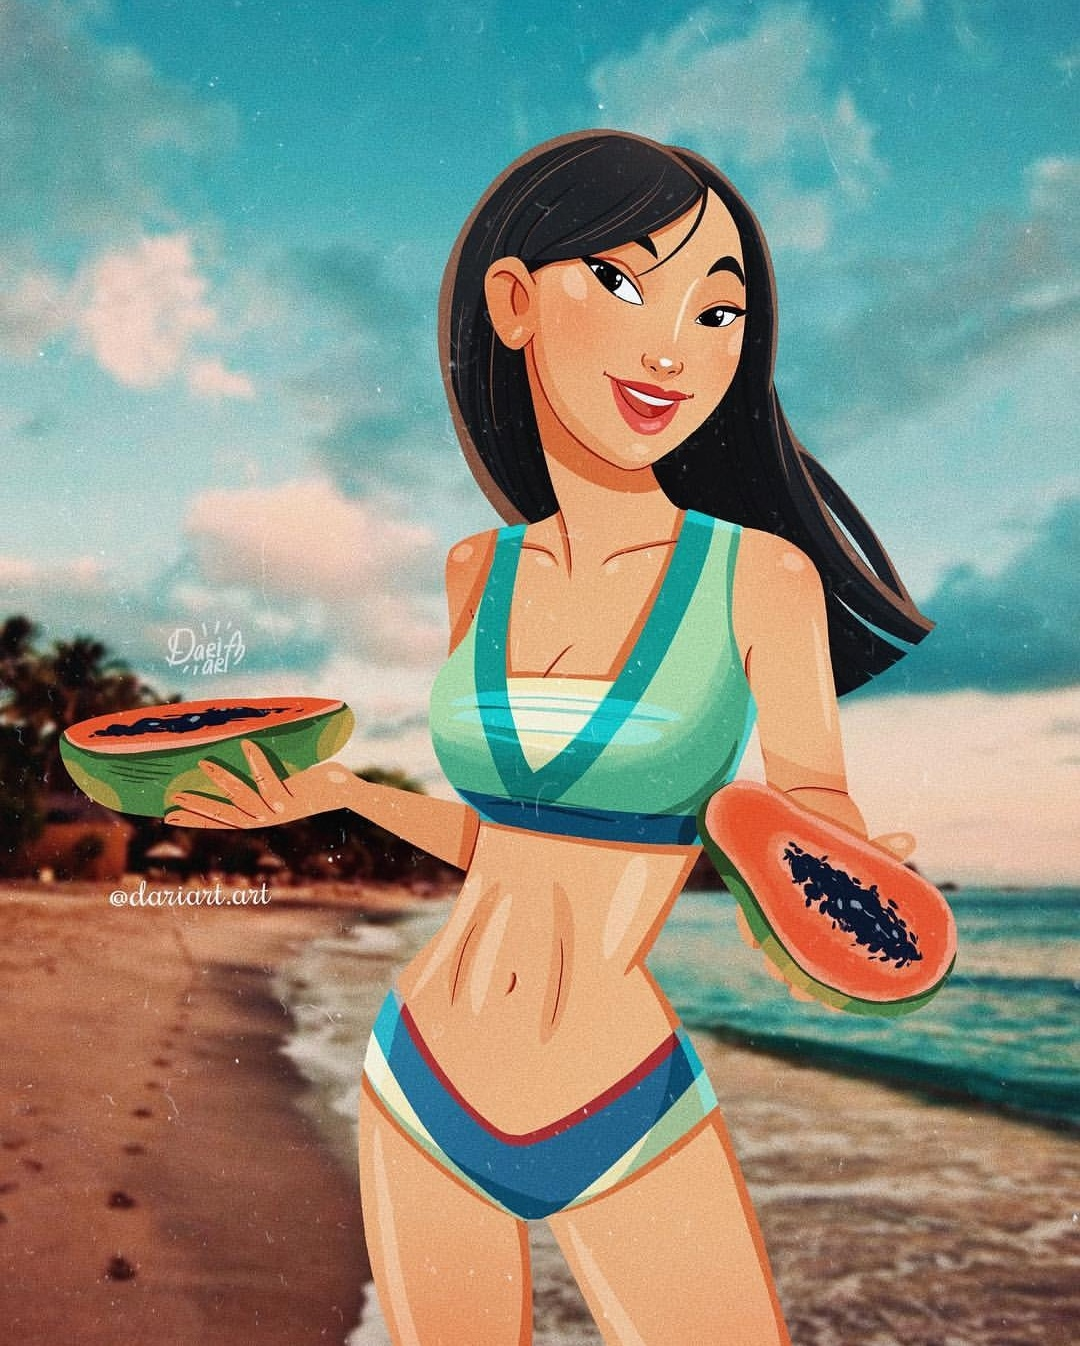 modern versions of Disney characters